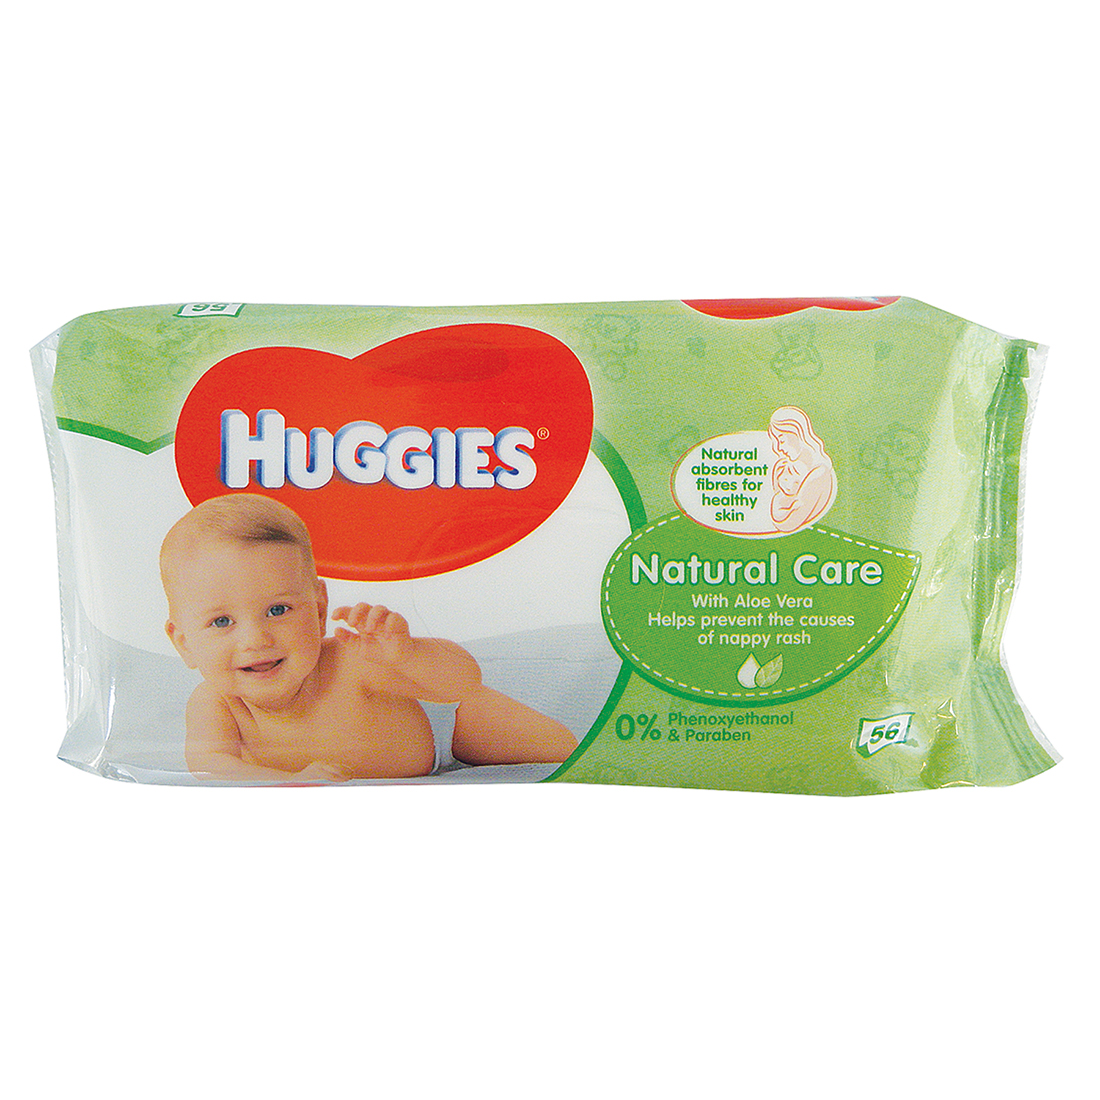 View HUGGIES BABY WIPES 56 COUNT NATURAL CARE